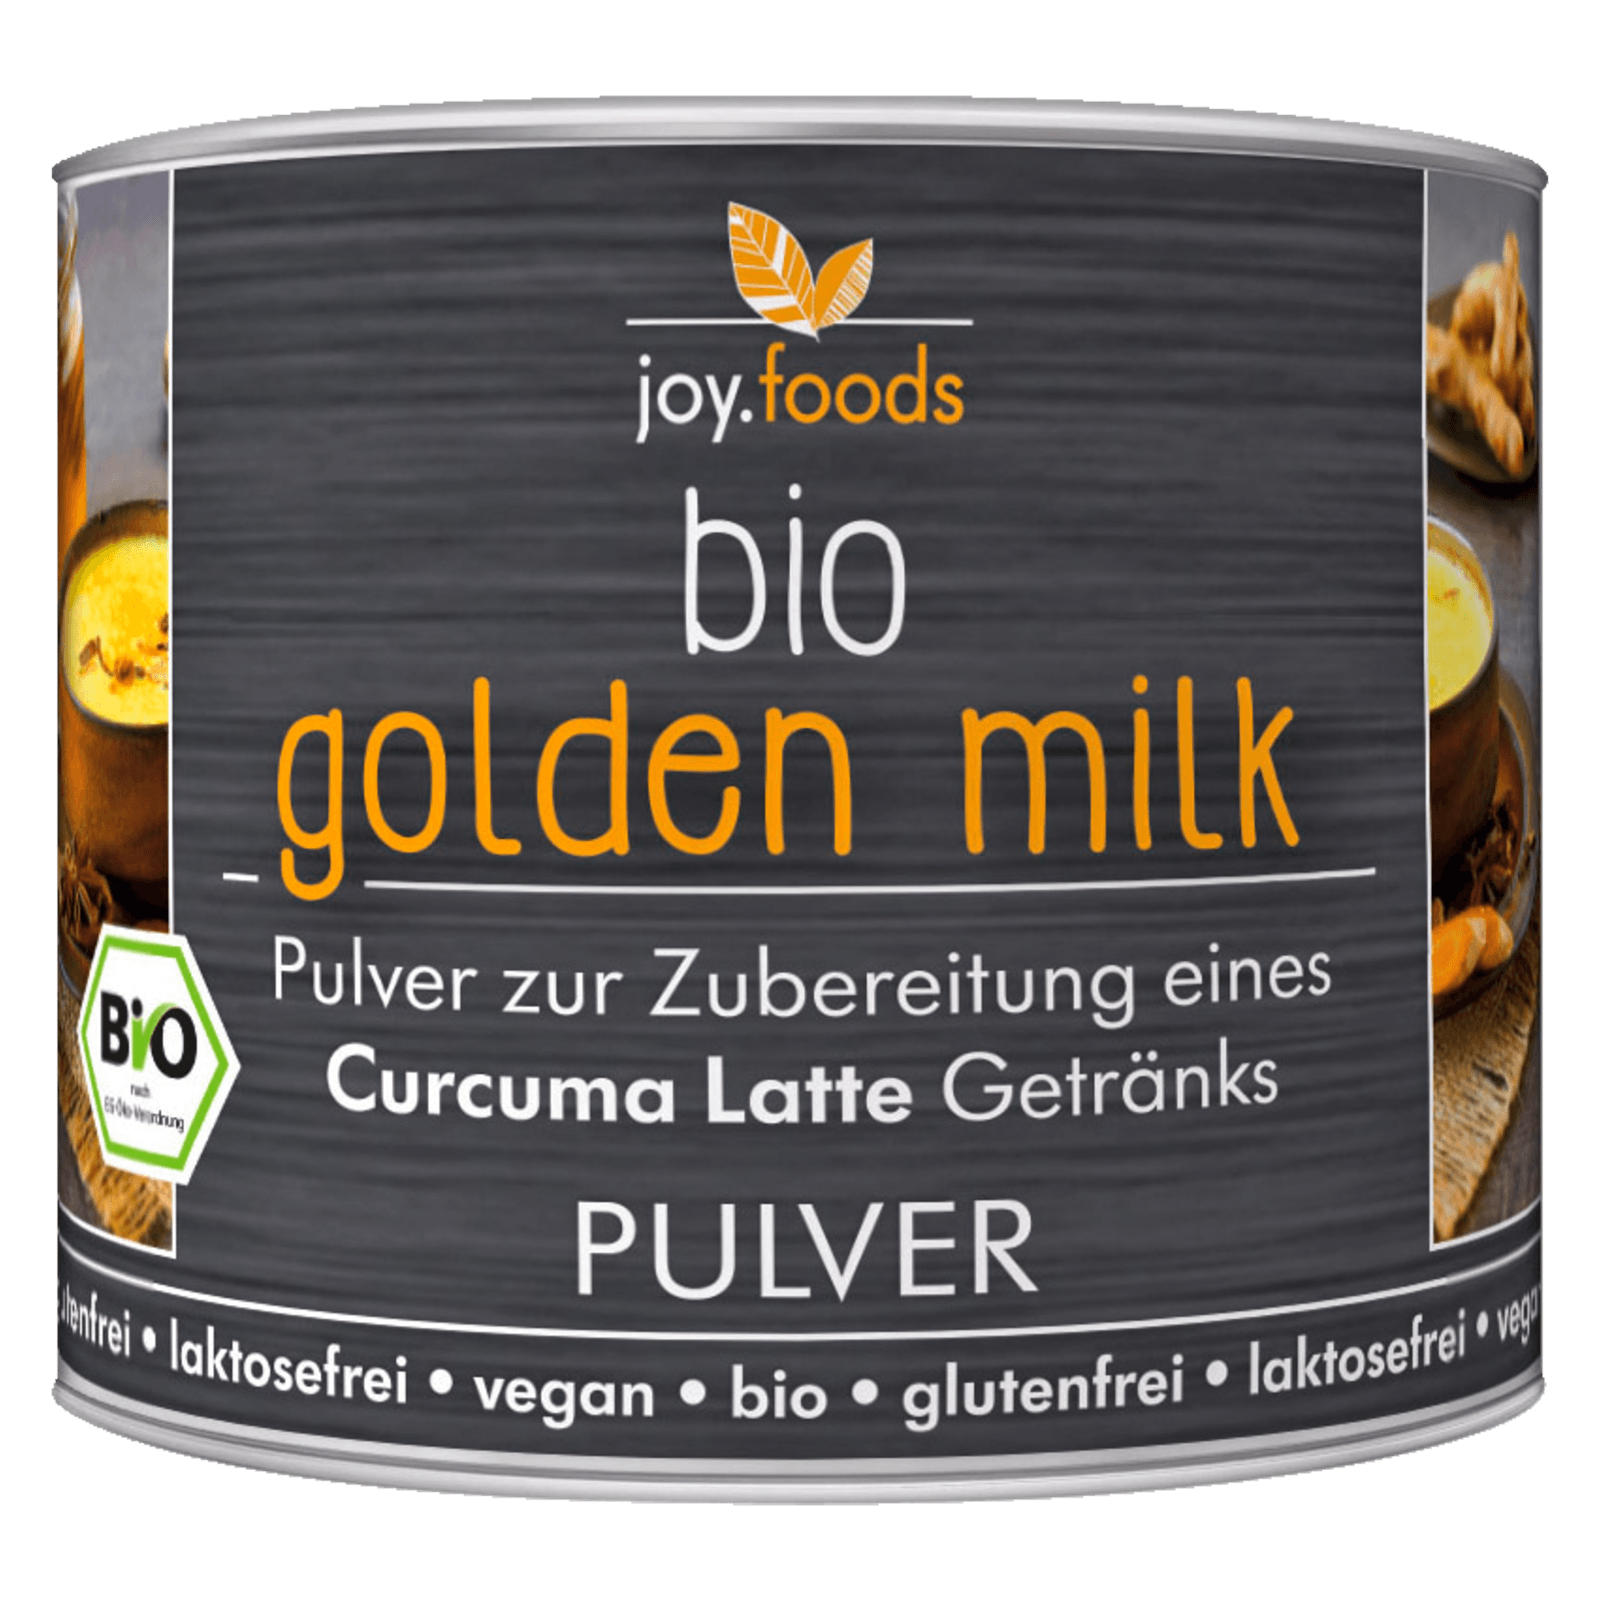 Joyfoods Golden Milk 70g